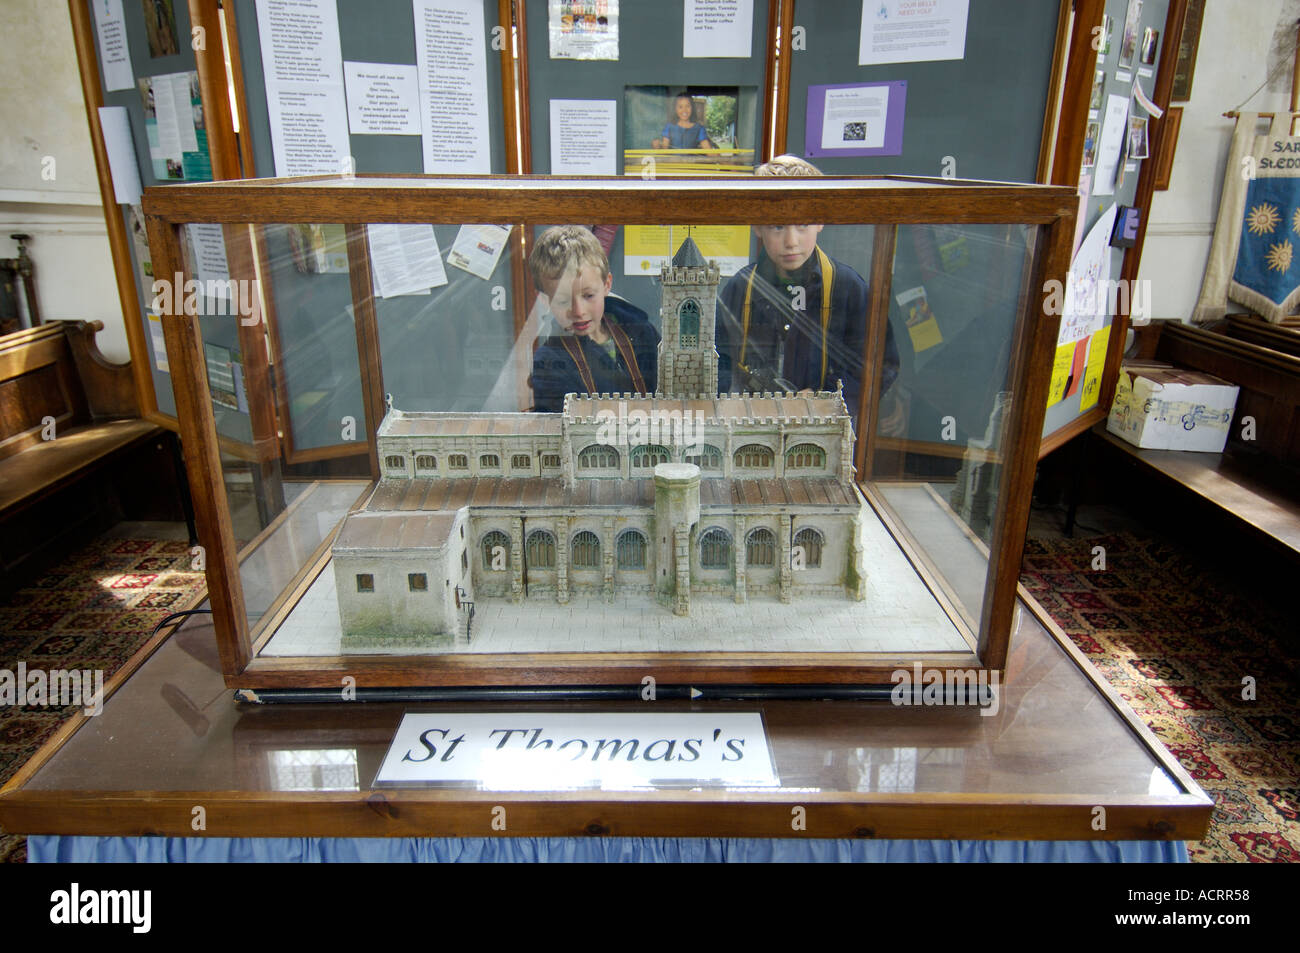 Model Of St Thomas S Church Salisbury Wiltshire England Stock  # Muebles Tom Mobel